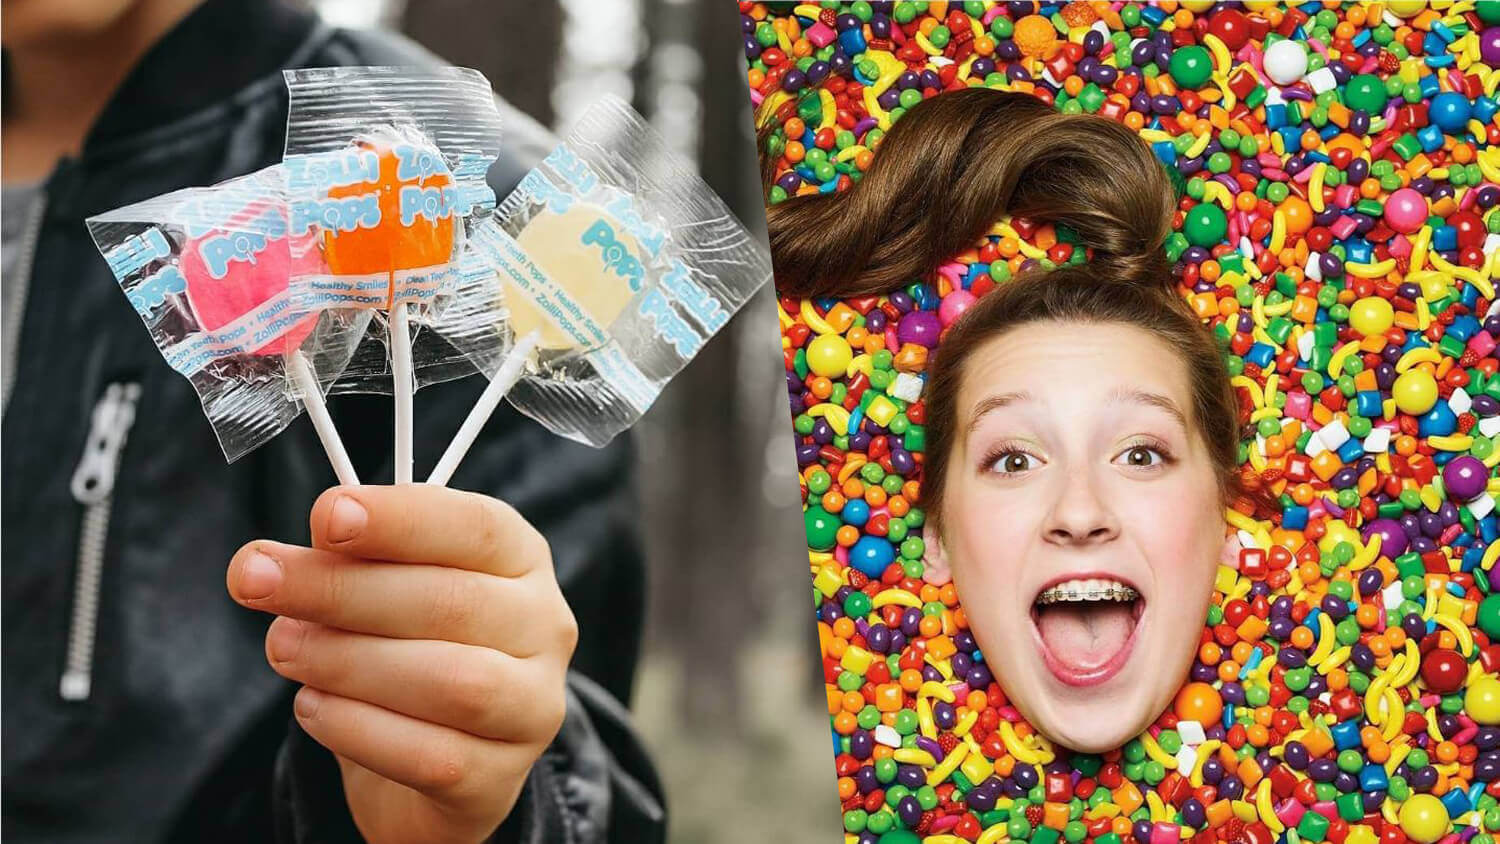 13-Year-Old's $6 Million Vegan Candy Company Protects Kids From Cavities